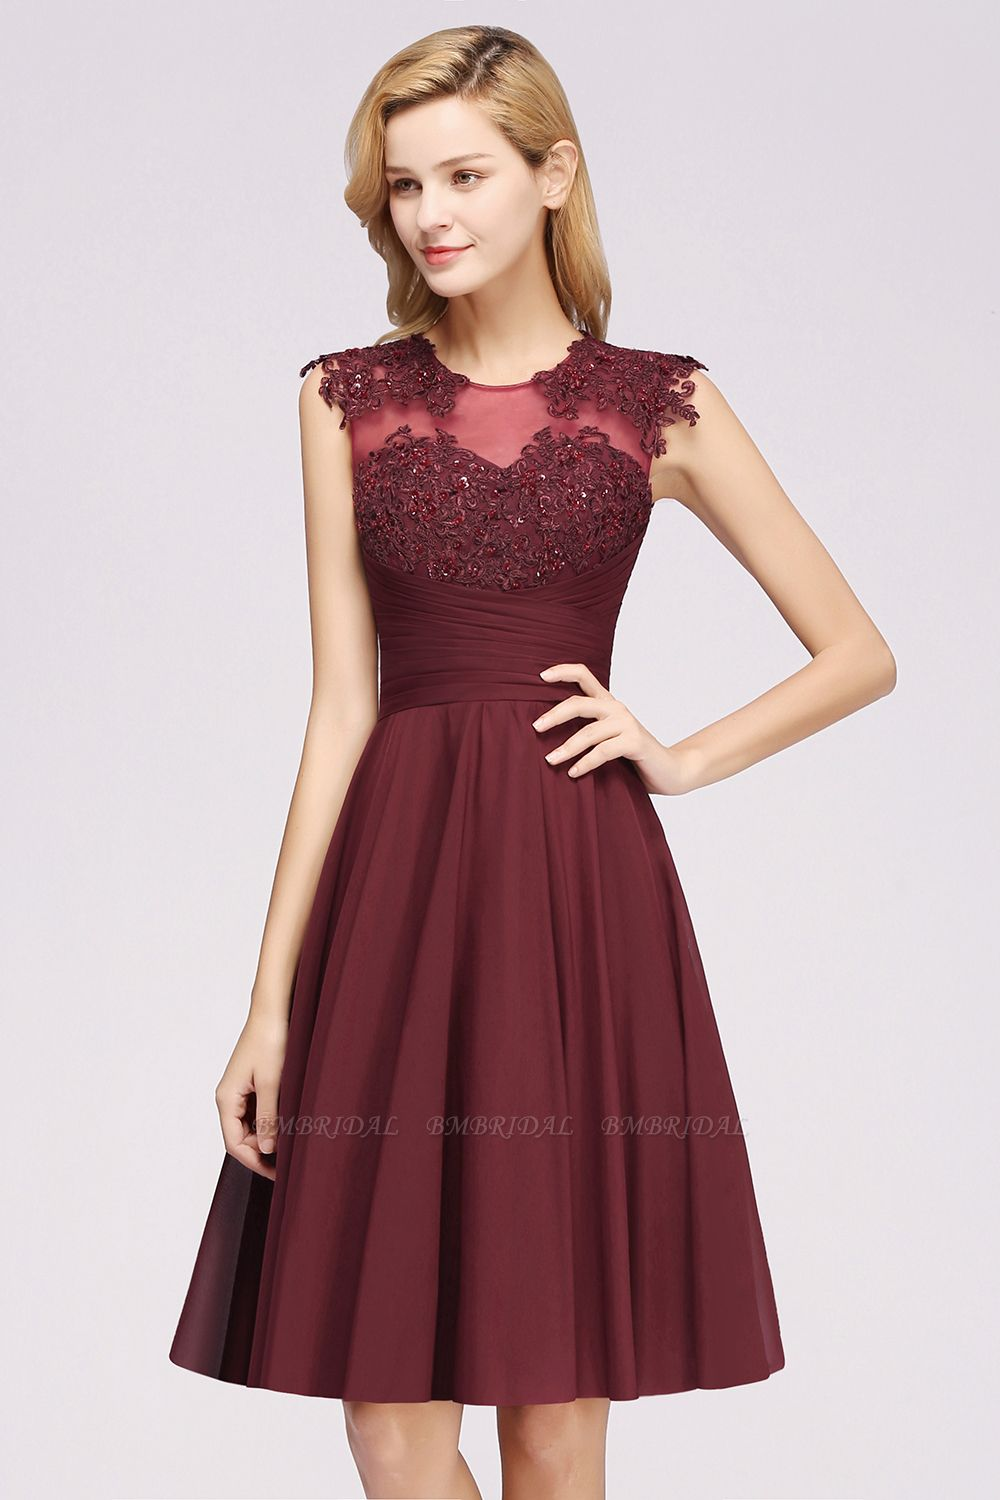 Short Bridesmaid Dresses Are Popular For More Occasions 1